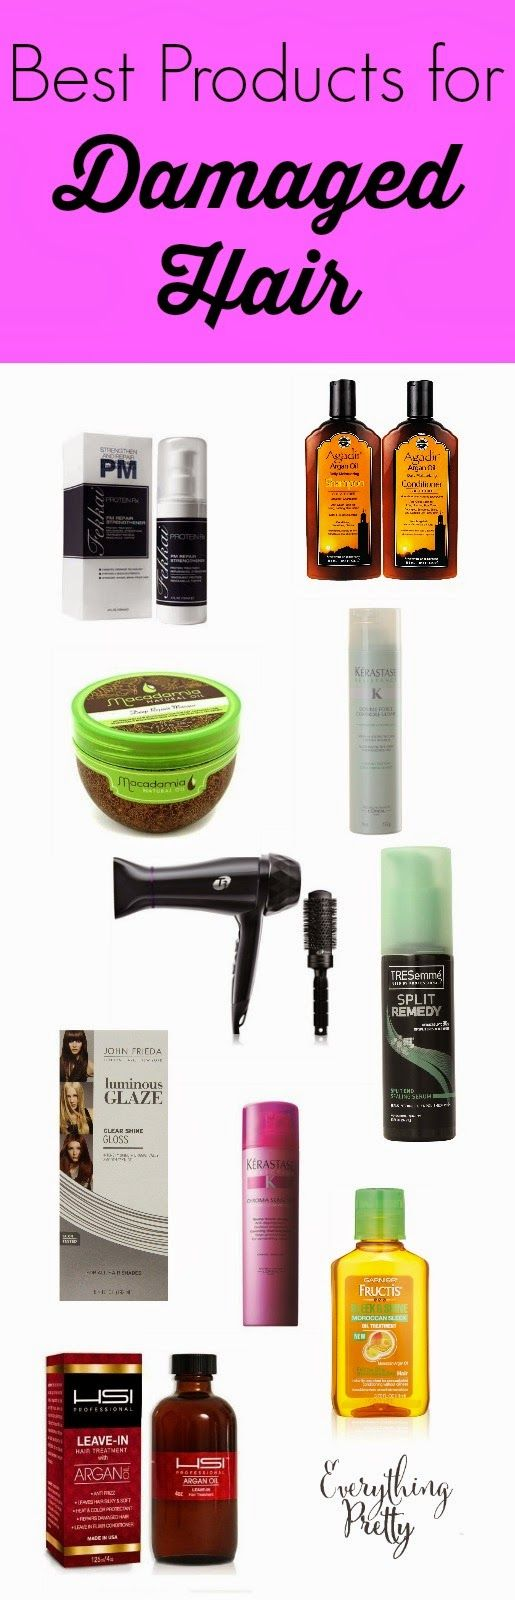 Best products for damaged hair: Hair masks, hair spray, shampoo, serums, and DIY recipes.